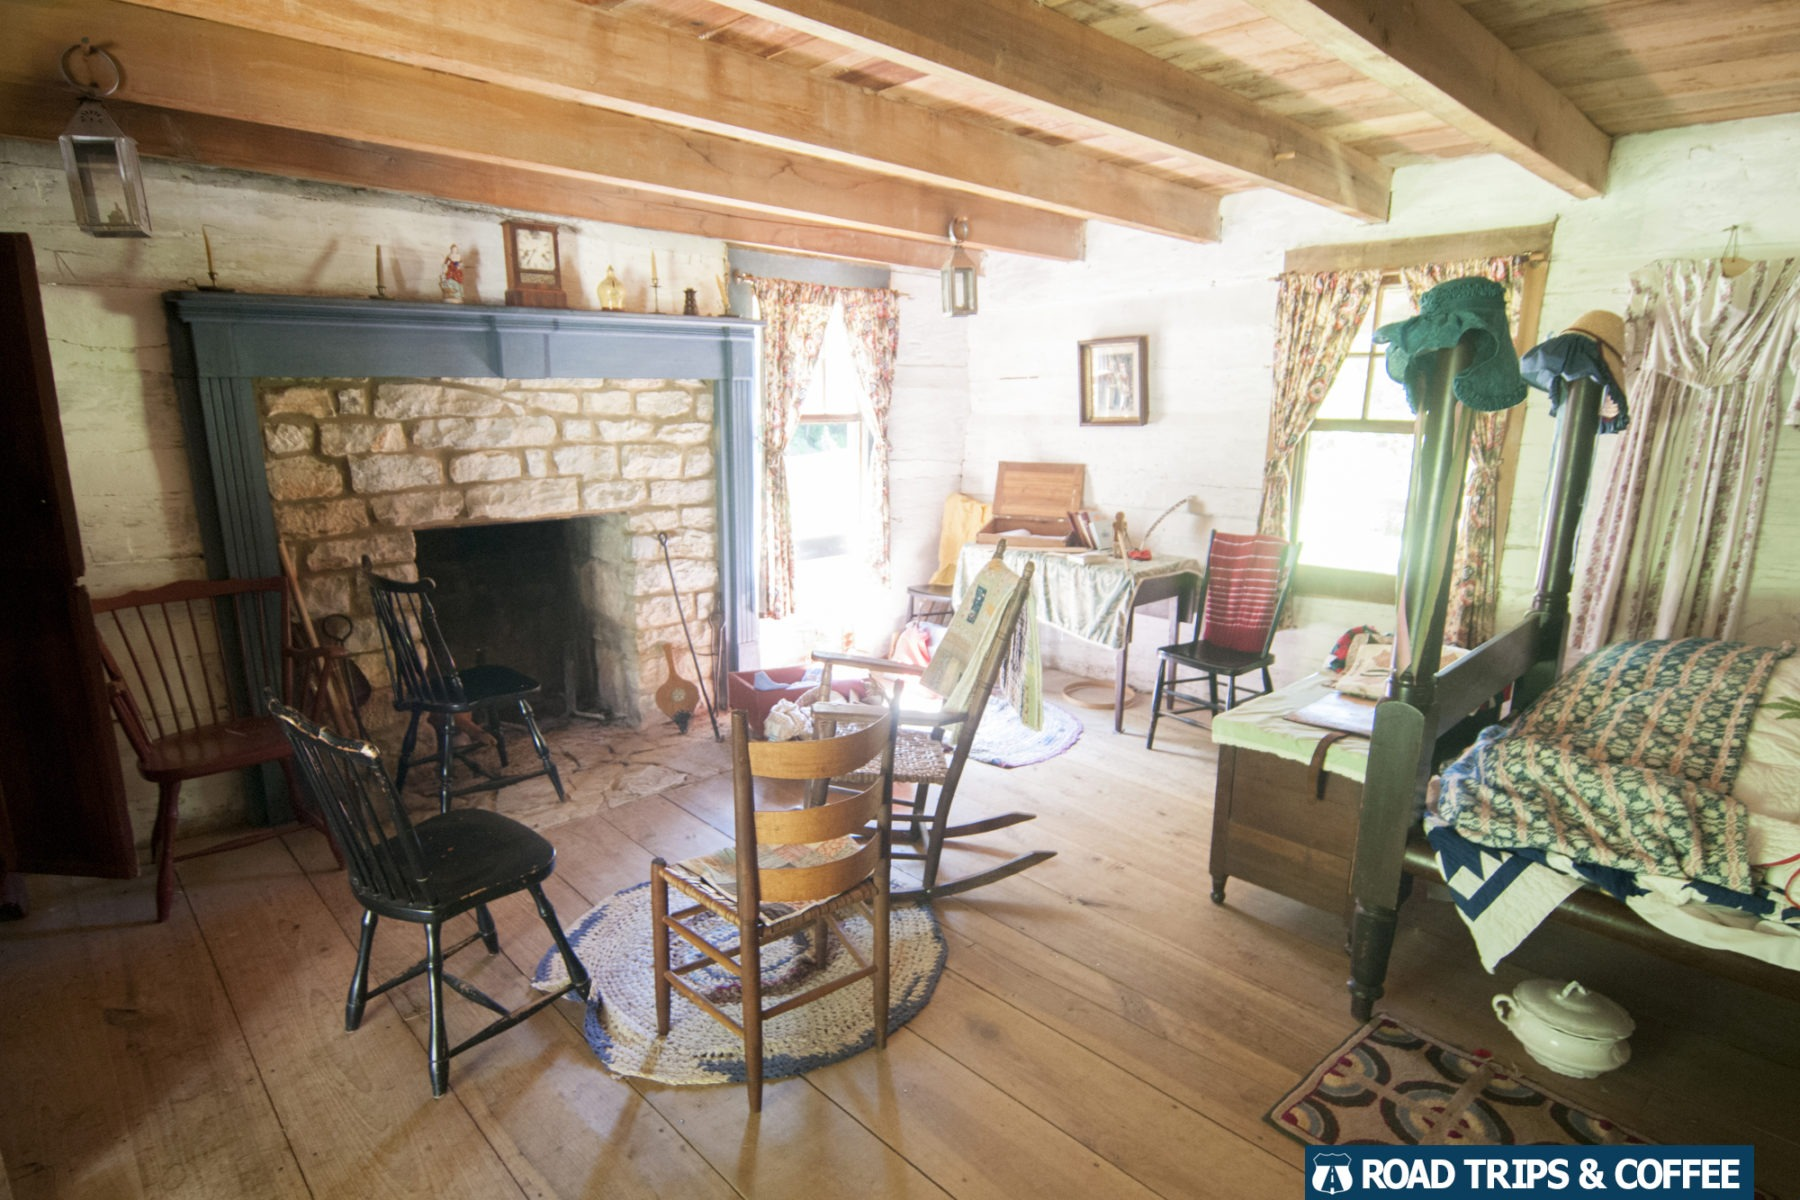 Interior of a rustic cabin at Homeplace 1850s Working Farm in Land Between the Lakes National Recreation Area